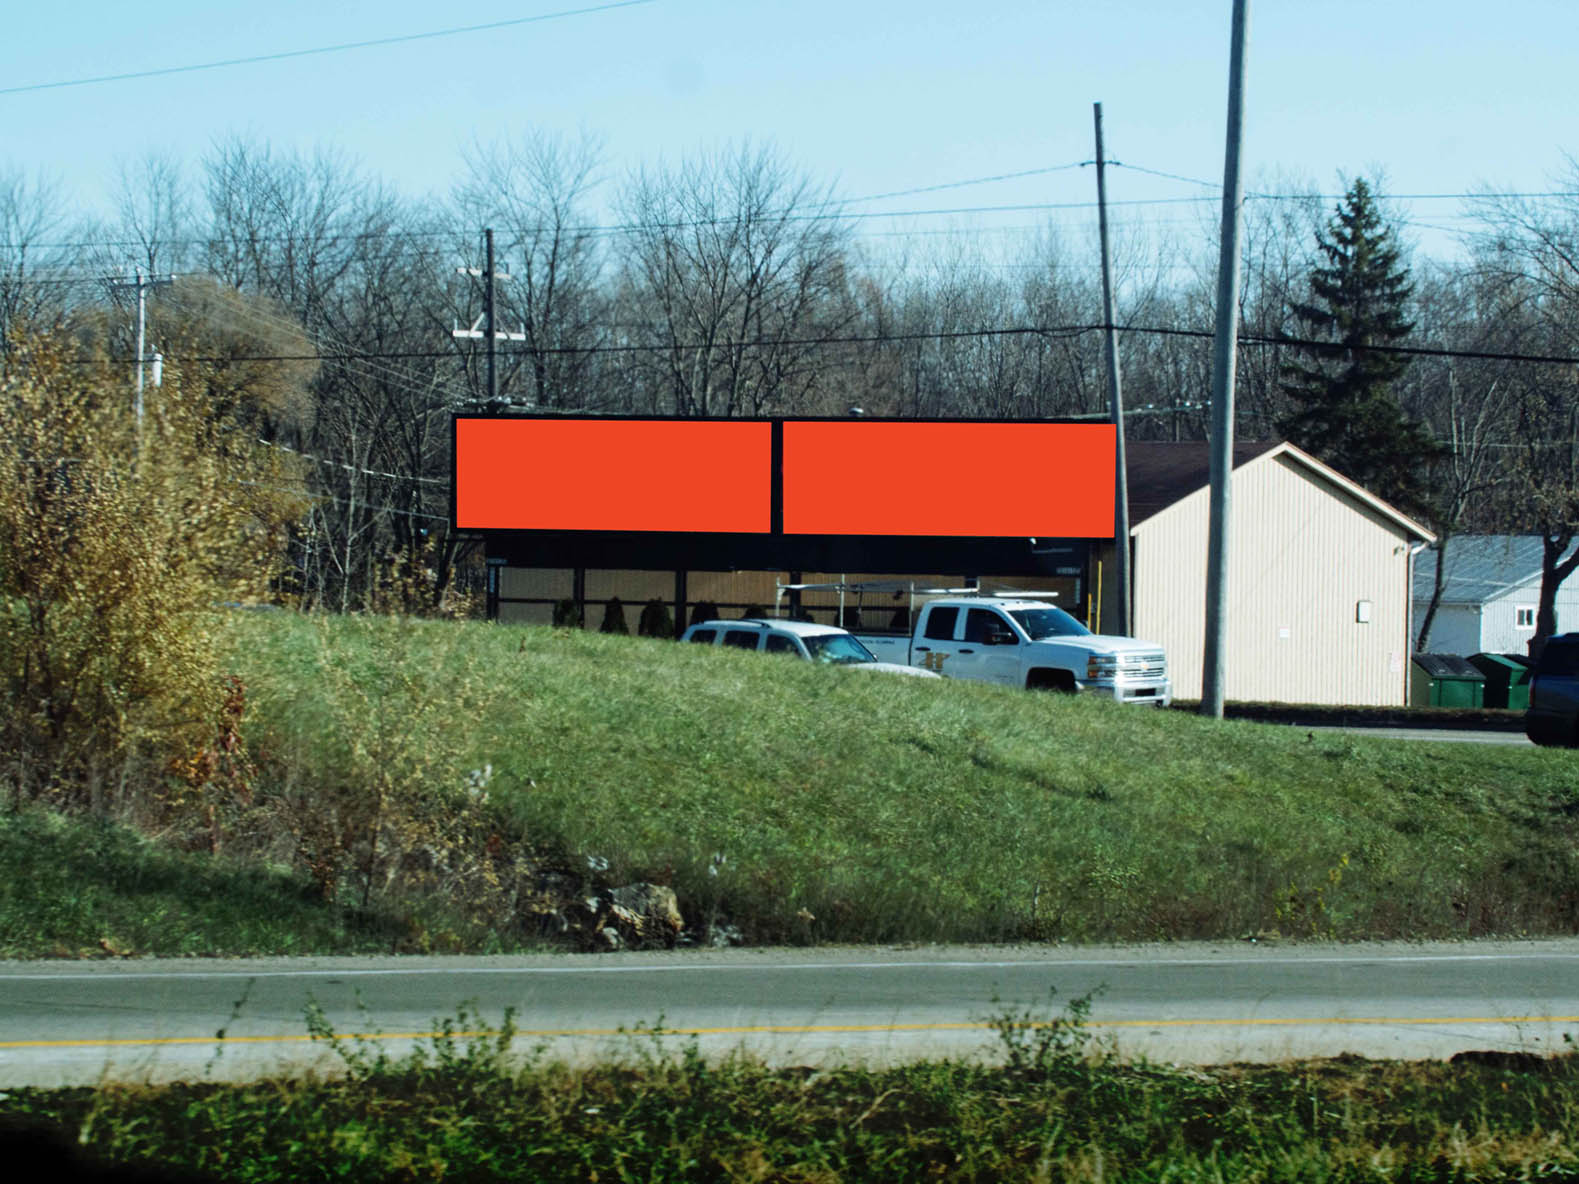 Billboard 421 West (10 x 30) - Geopath: 30655450